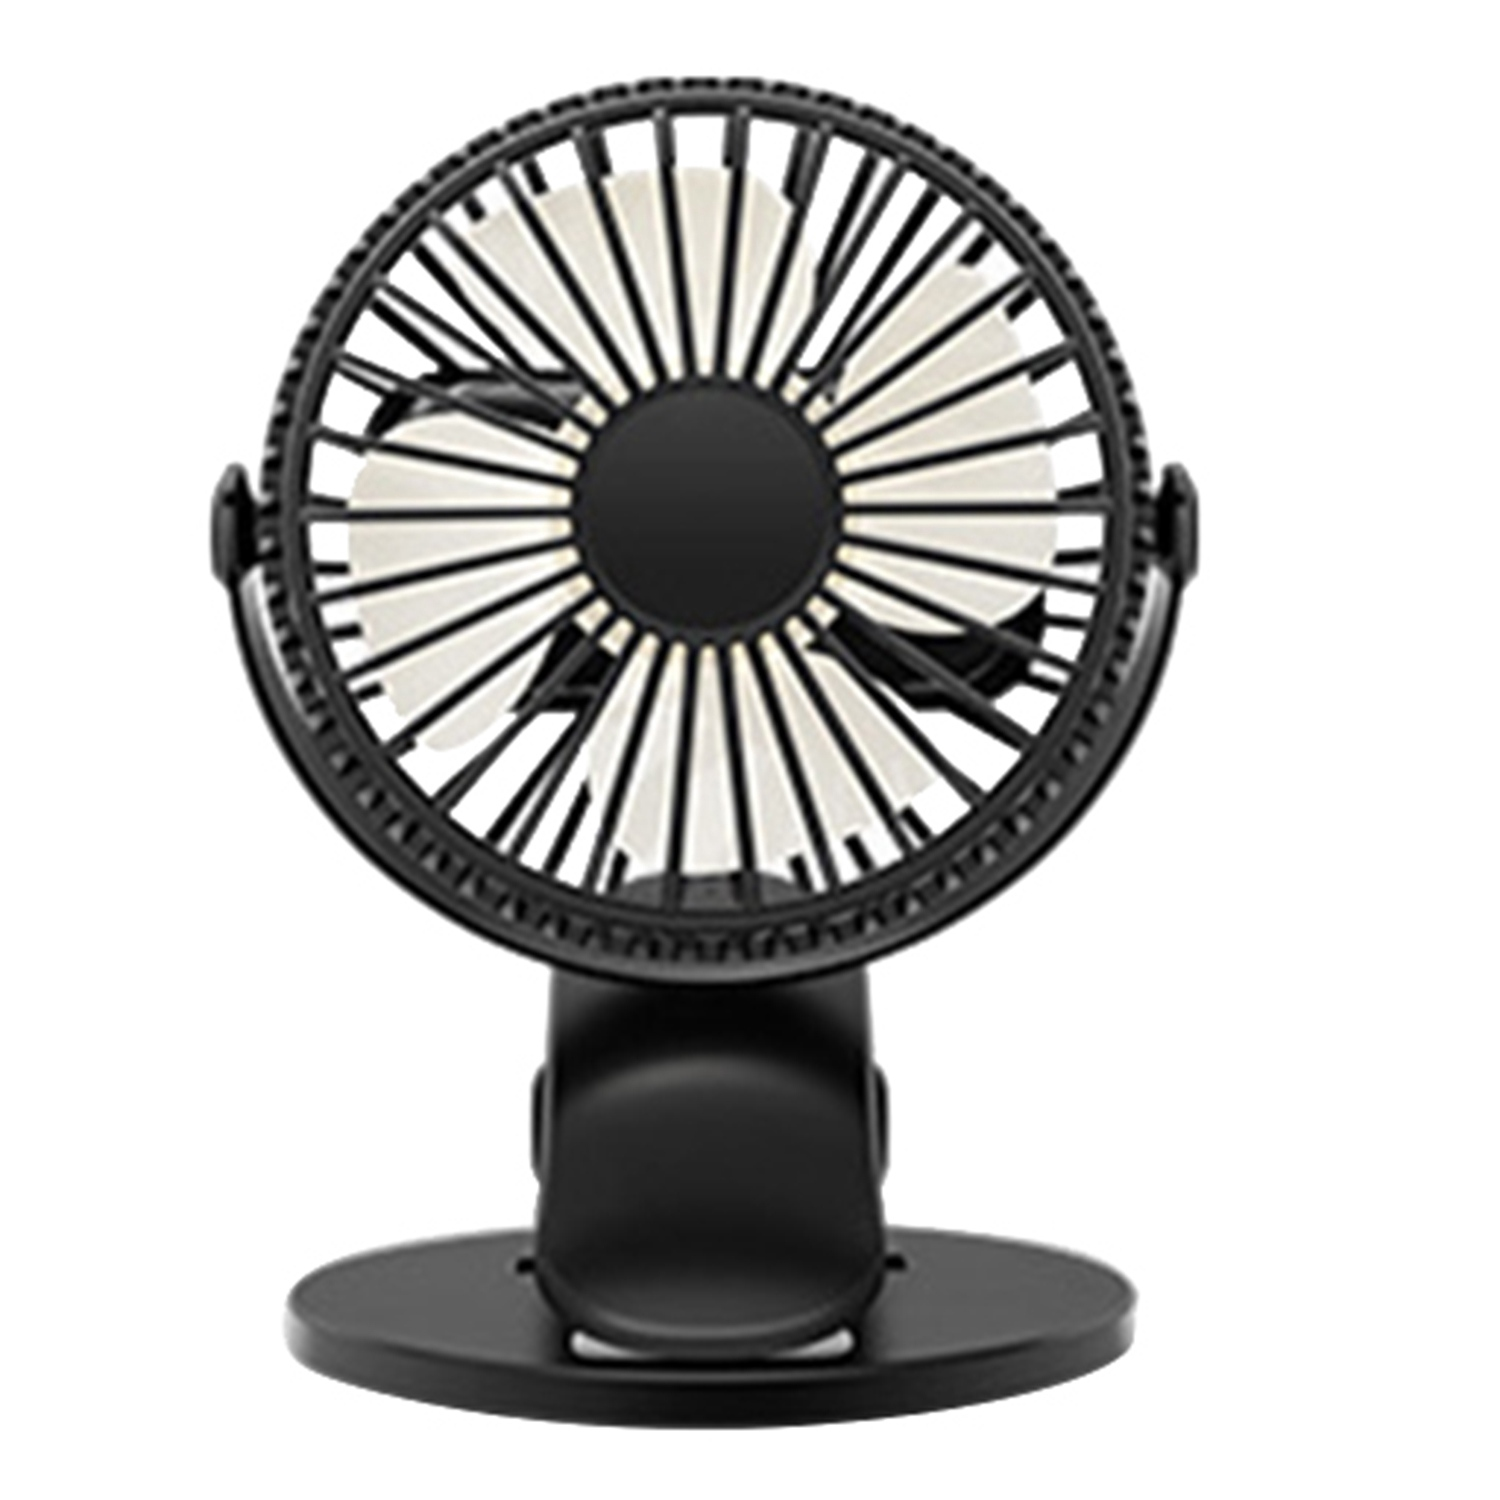 Fans Mmfc-portable Desk Usb Cooler Cooling Fan Usb Mini Fans Operation Super Mute Silent Pc/laptop/notebook Let Our Commodities Go To The World